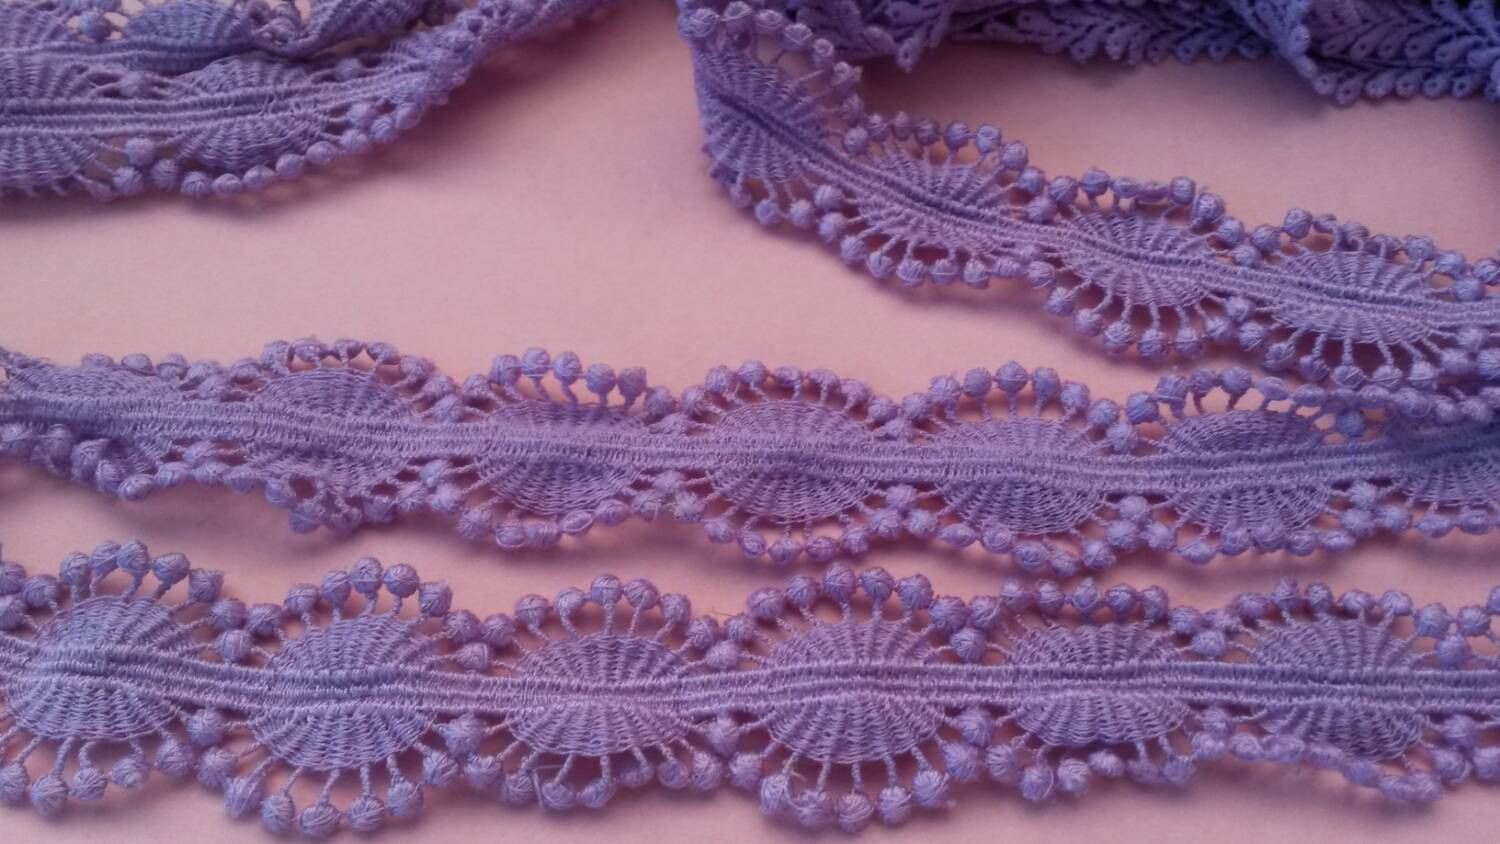 """Crochet Lace Trimming Awesome 2 Yards Purple Cotton Lace Trim 1"""" Wide Embroidery Crochet Of Superb 50 Pics Crochet Lace Trimming"""